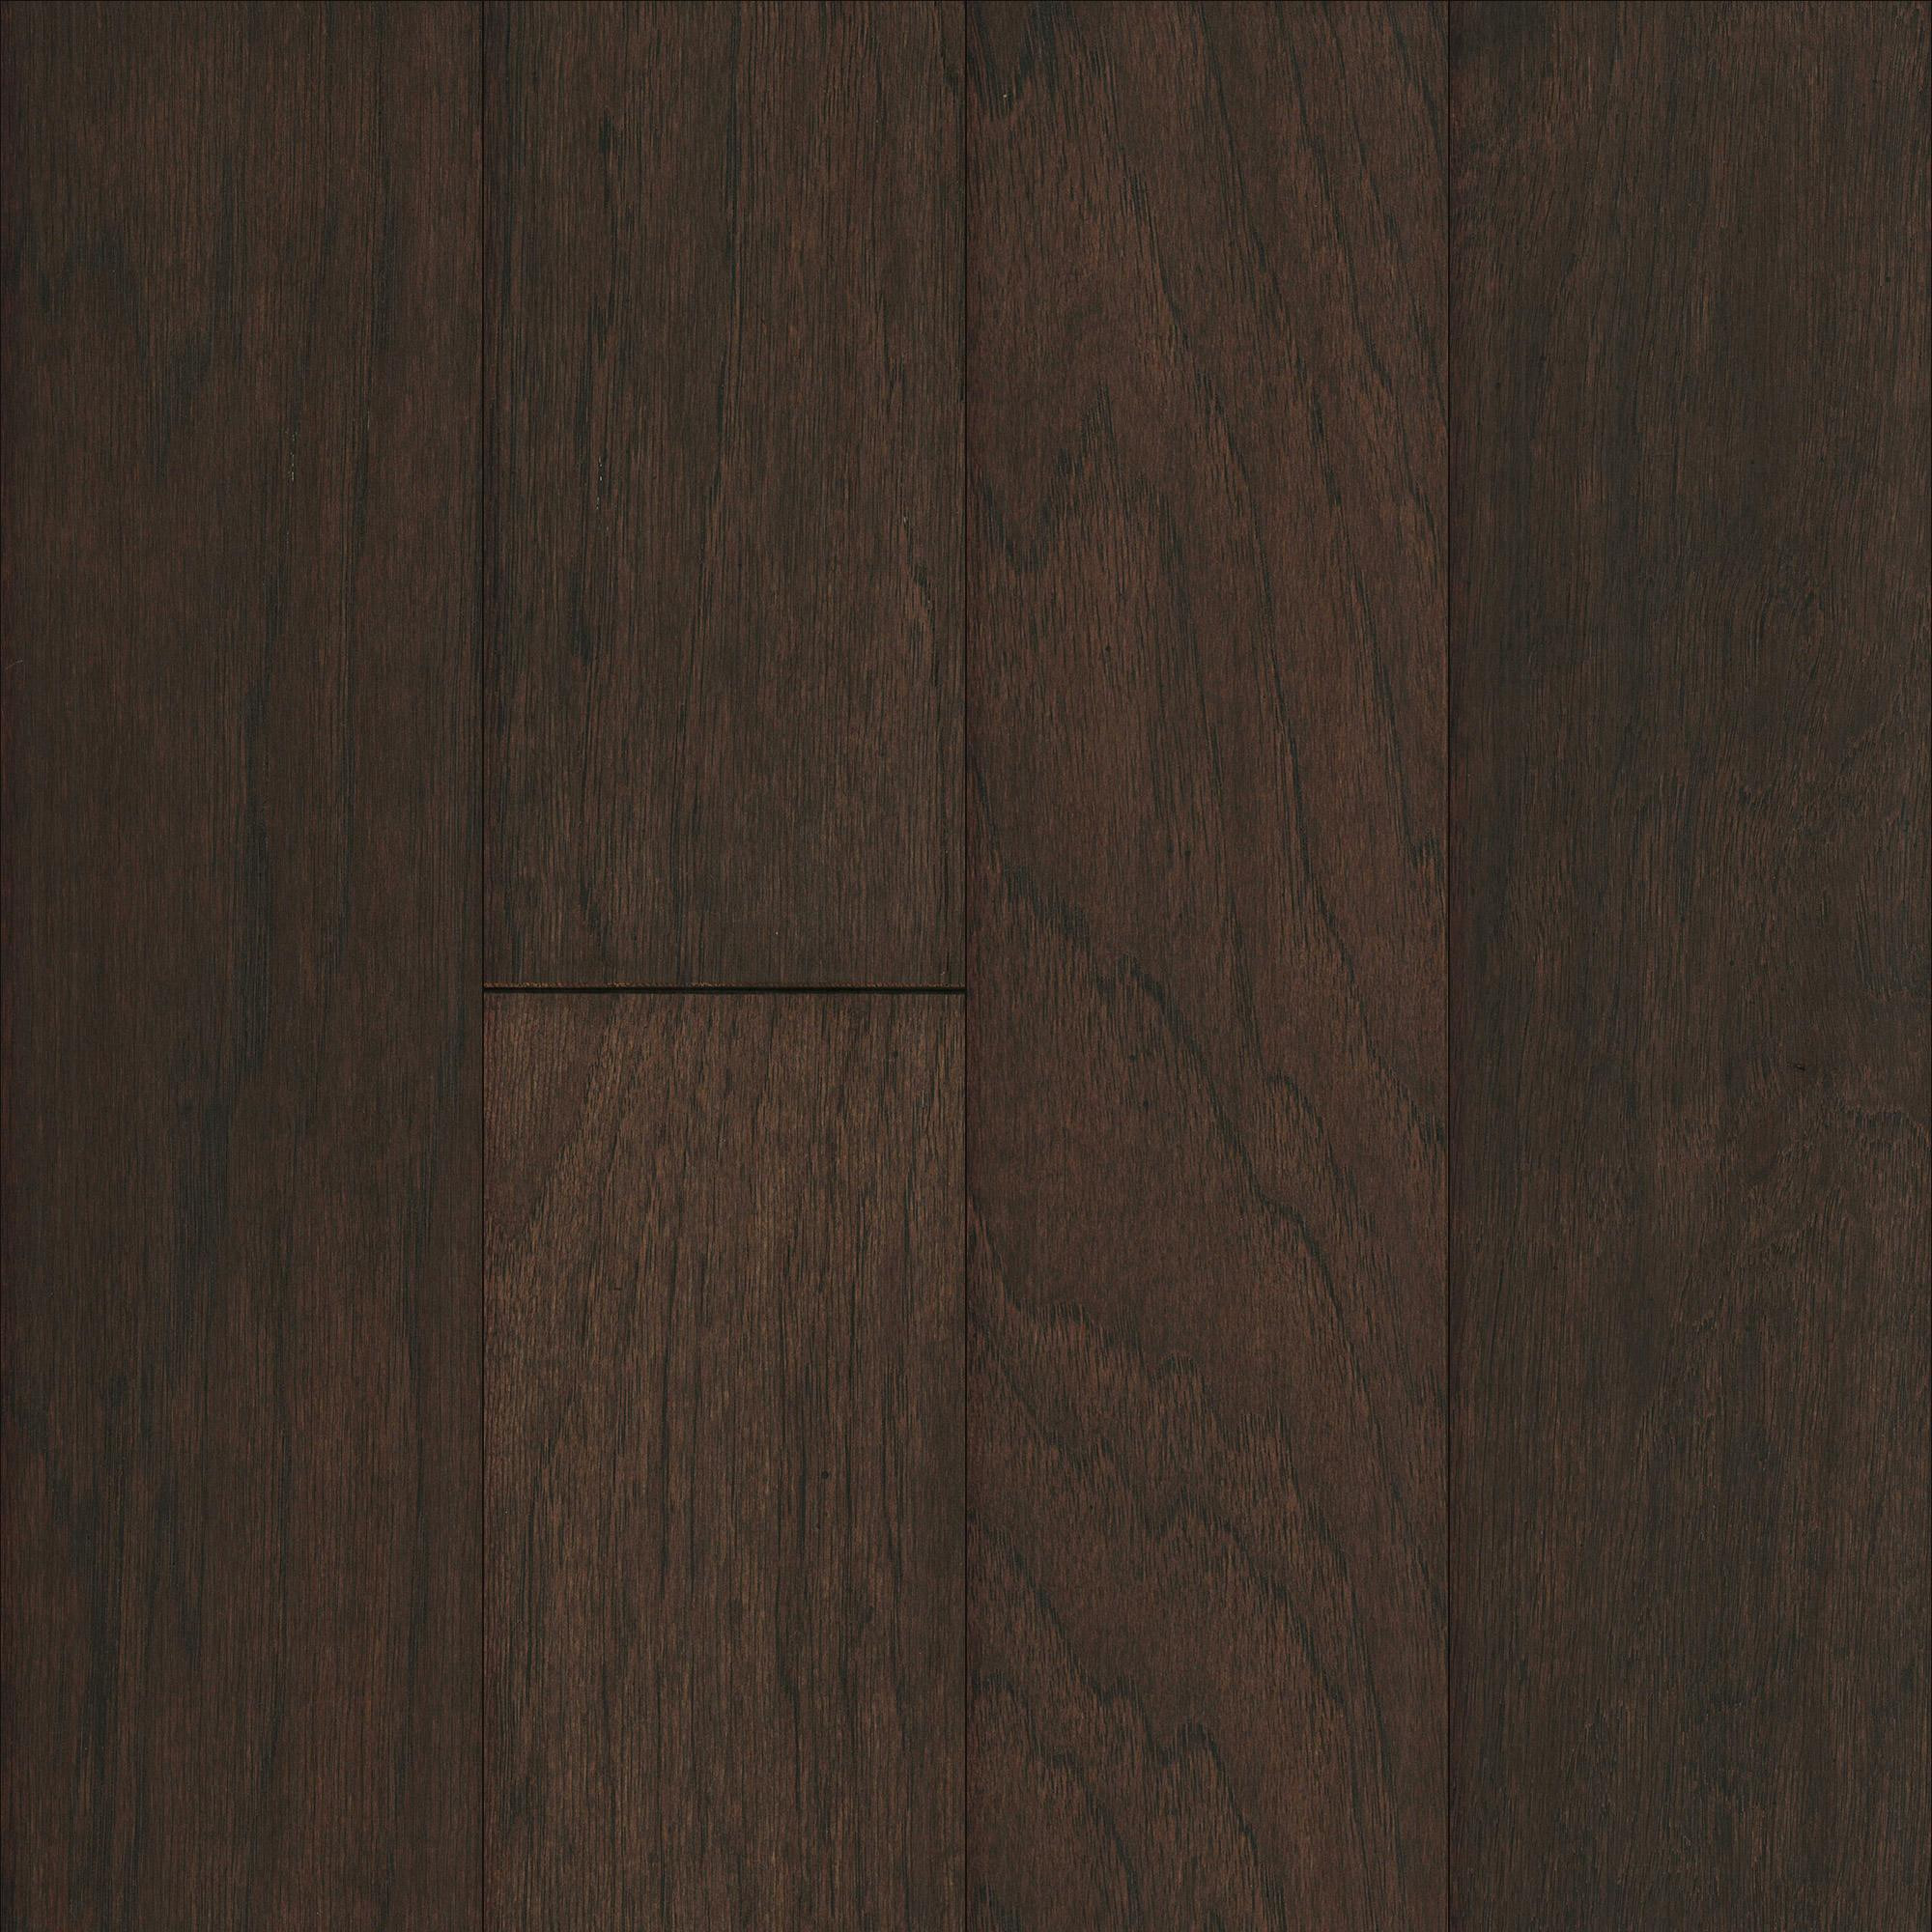 Hardwood Flooring Engineered Vs solid Cost Of Mullican Devonshire Hickory Espresso 5 Engineered Hardwood Flooring Regarding Hickory Espresso 5 X 40 2000 A